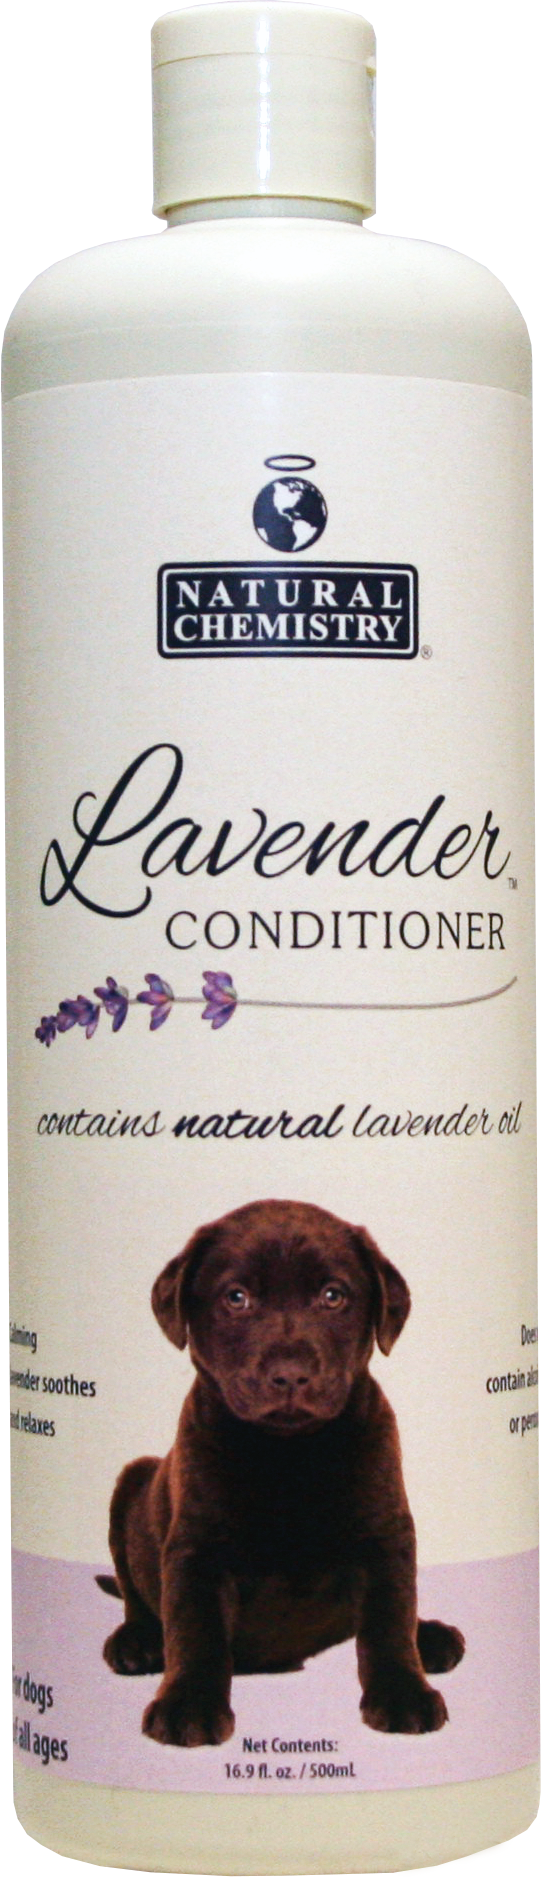 11126 Lavender Conditioner.png